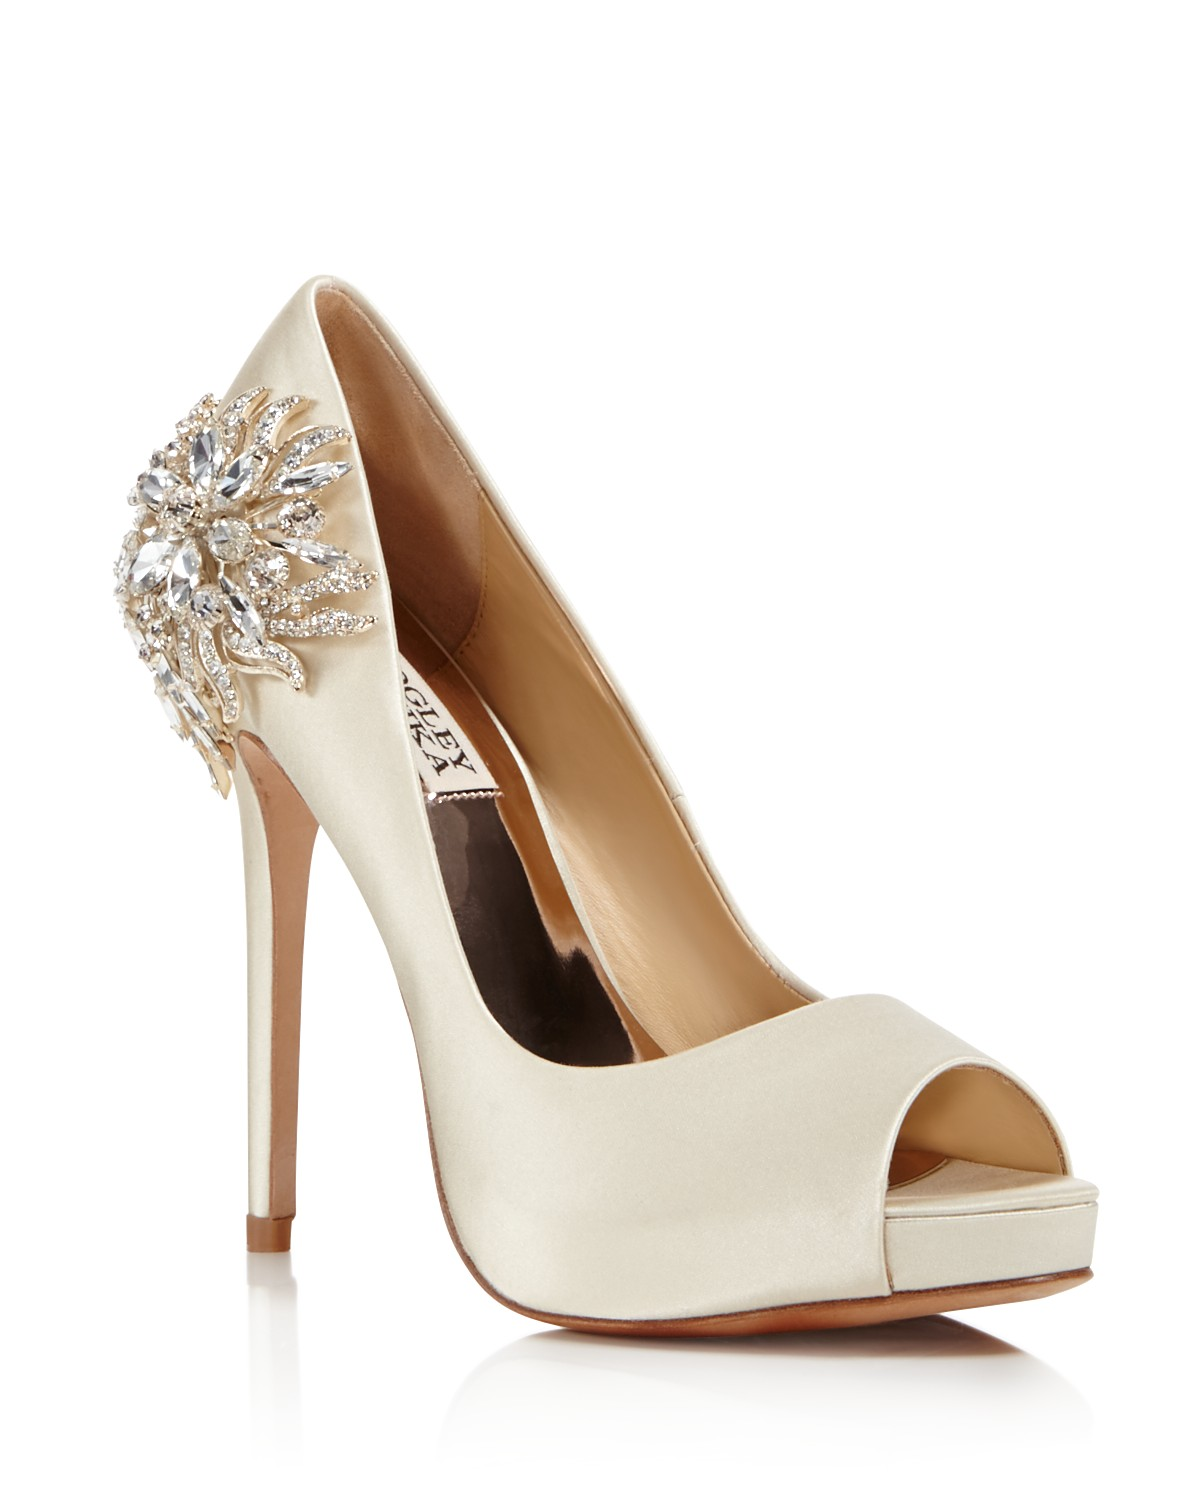 Badgley Mischka Women's Marcia Embellished Satin Peep Toe Pumps tLkeVRK